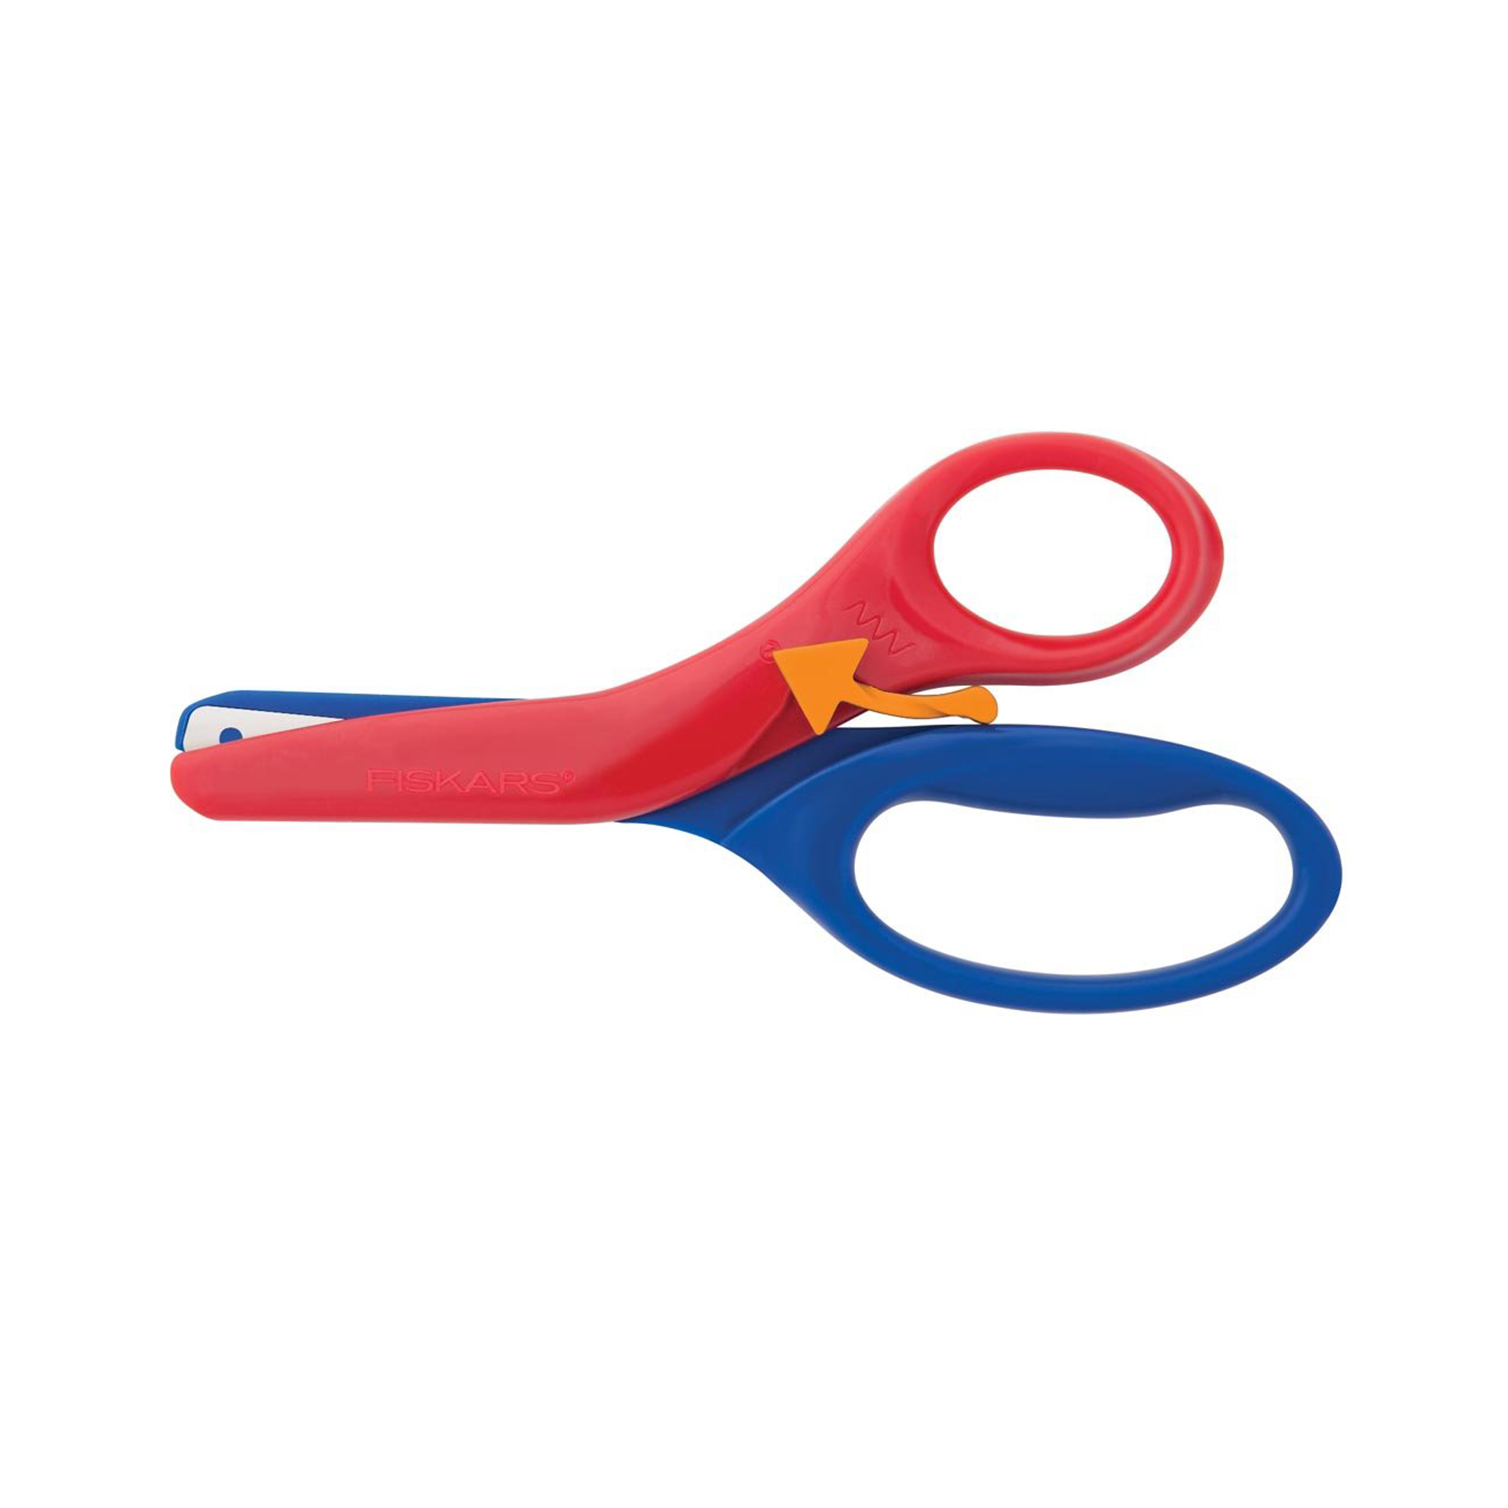 Your toddler will love these scissors made just for them